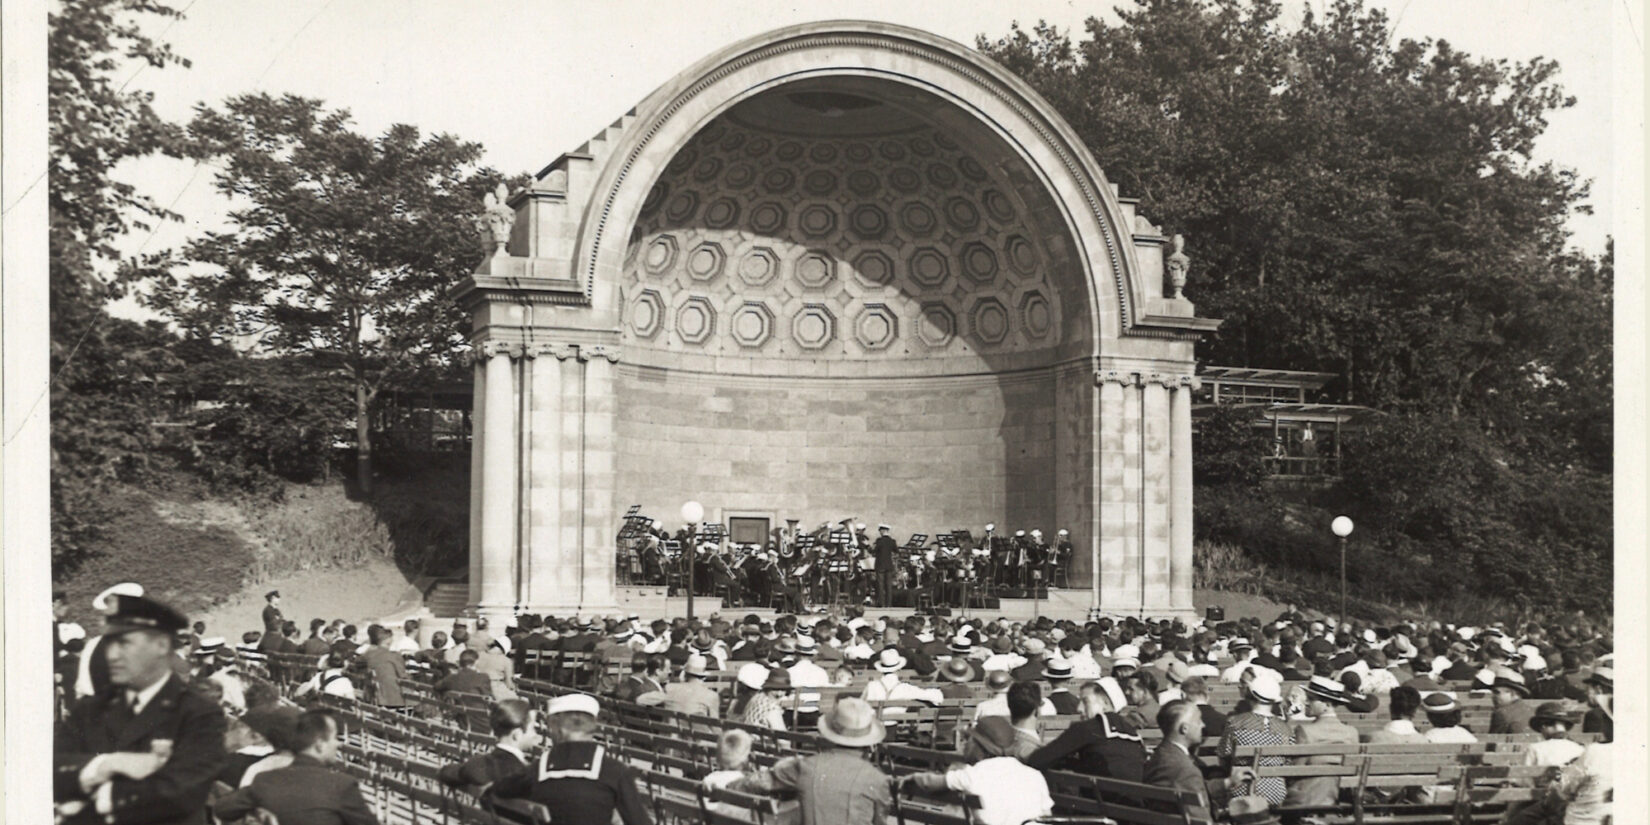 A black-and-white photo of the bandshell hosting a concert.